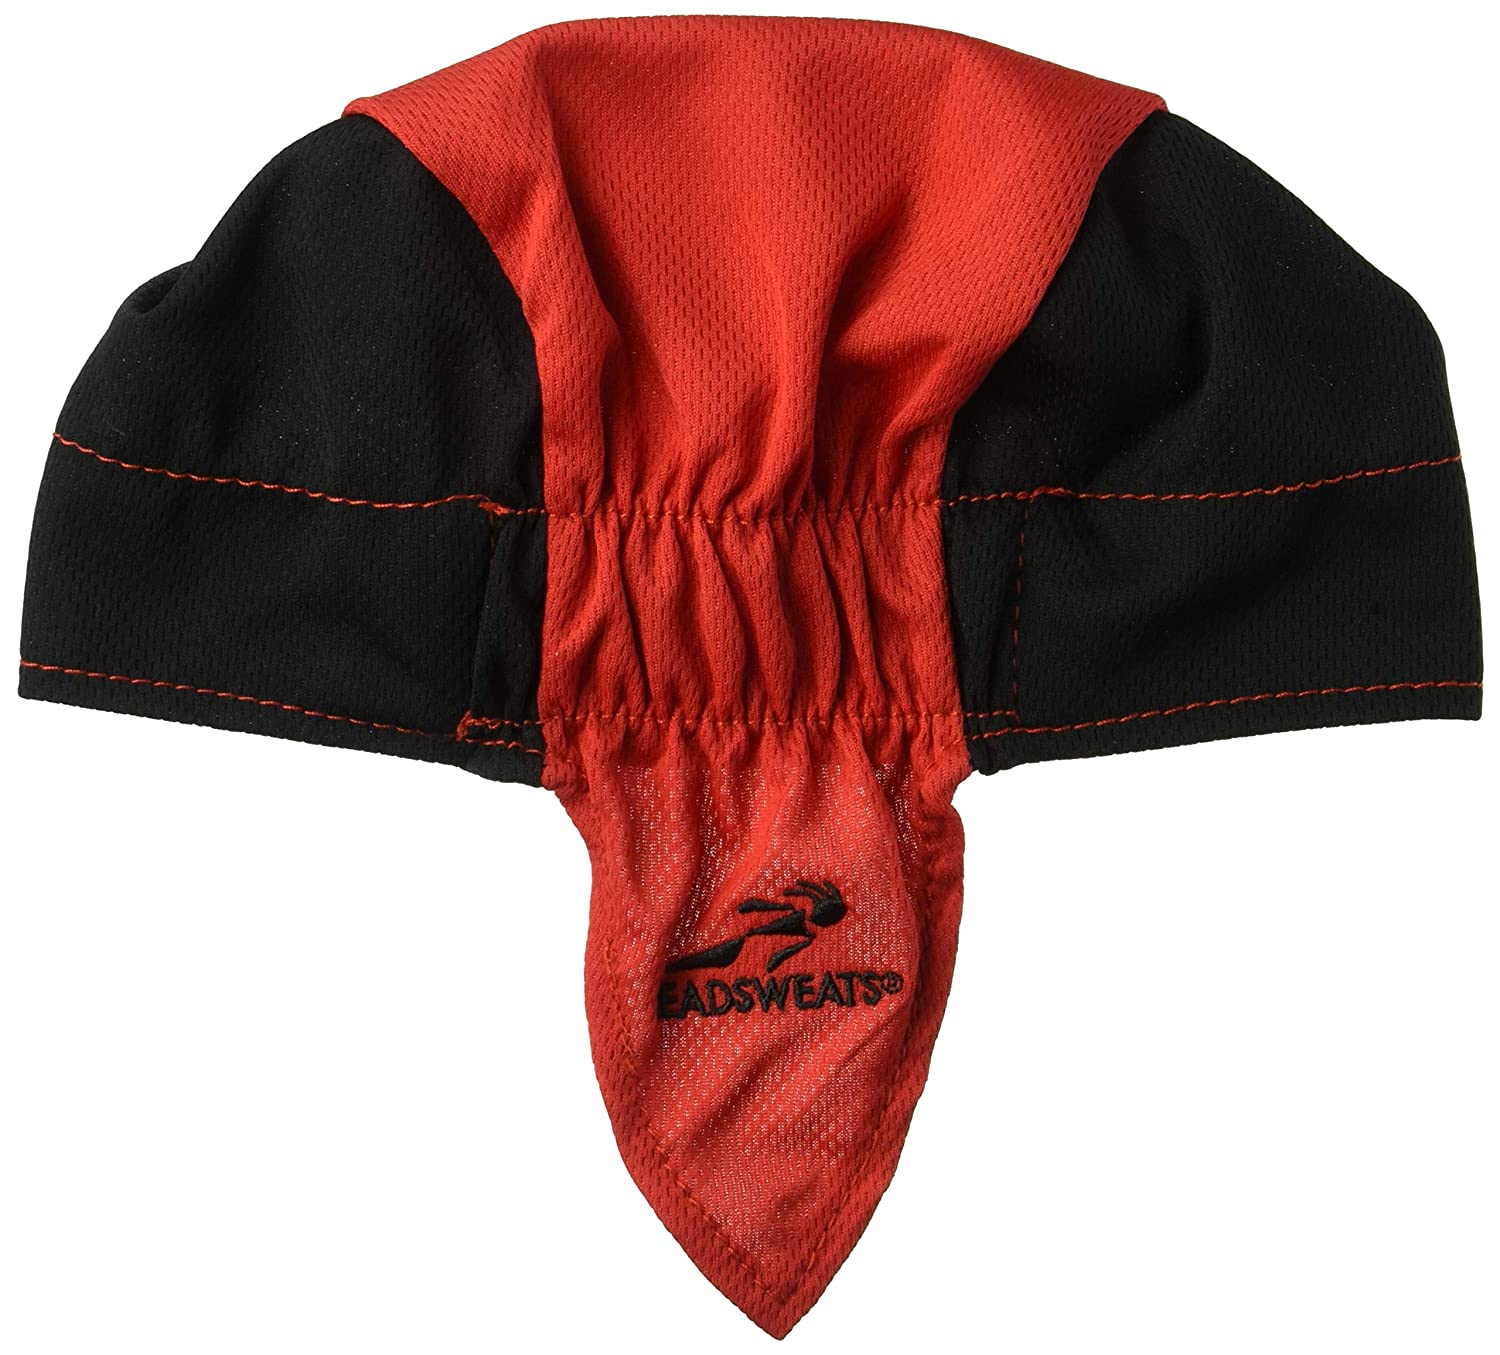 Headsweats Super Duty Shorty Beanie and Helmet Liner Black One Size 8807 802